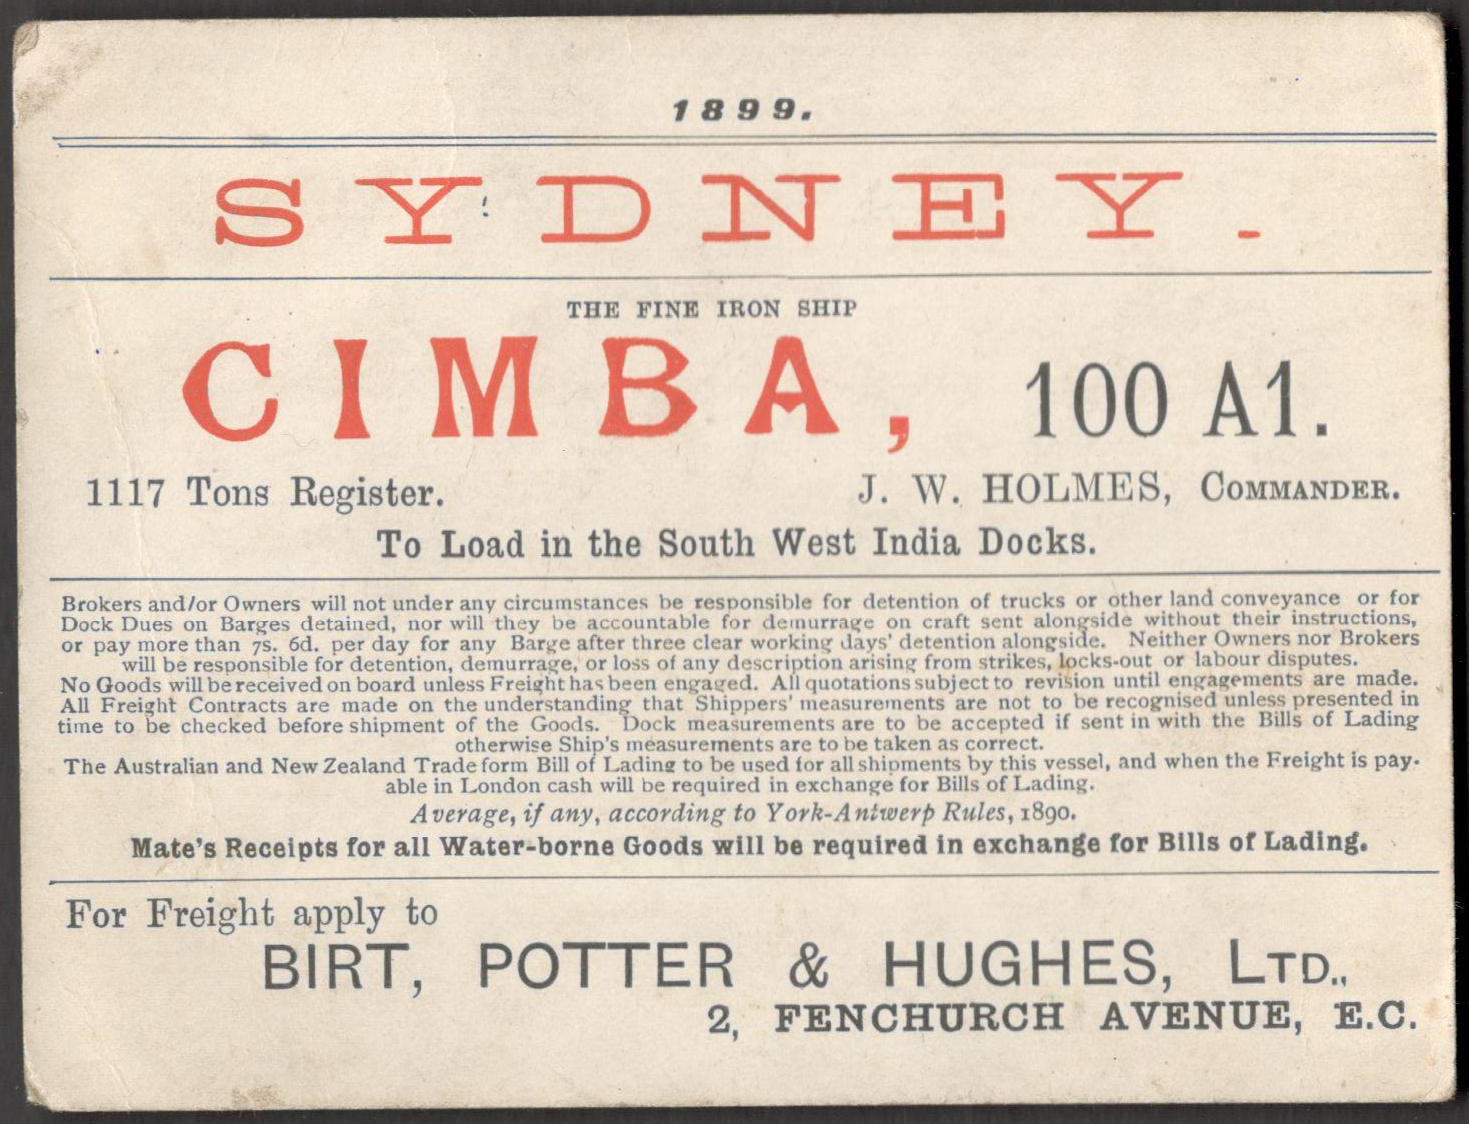 Lot 1 - SYDNEY CIMBA THE FINE IRON SHIP 1899 PASS FOR LOAD IN THE SOUTH WEST INDIA DOCKS